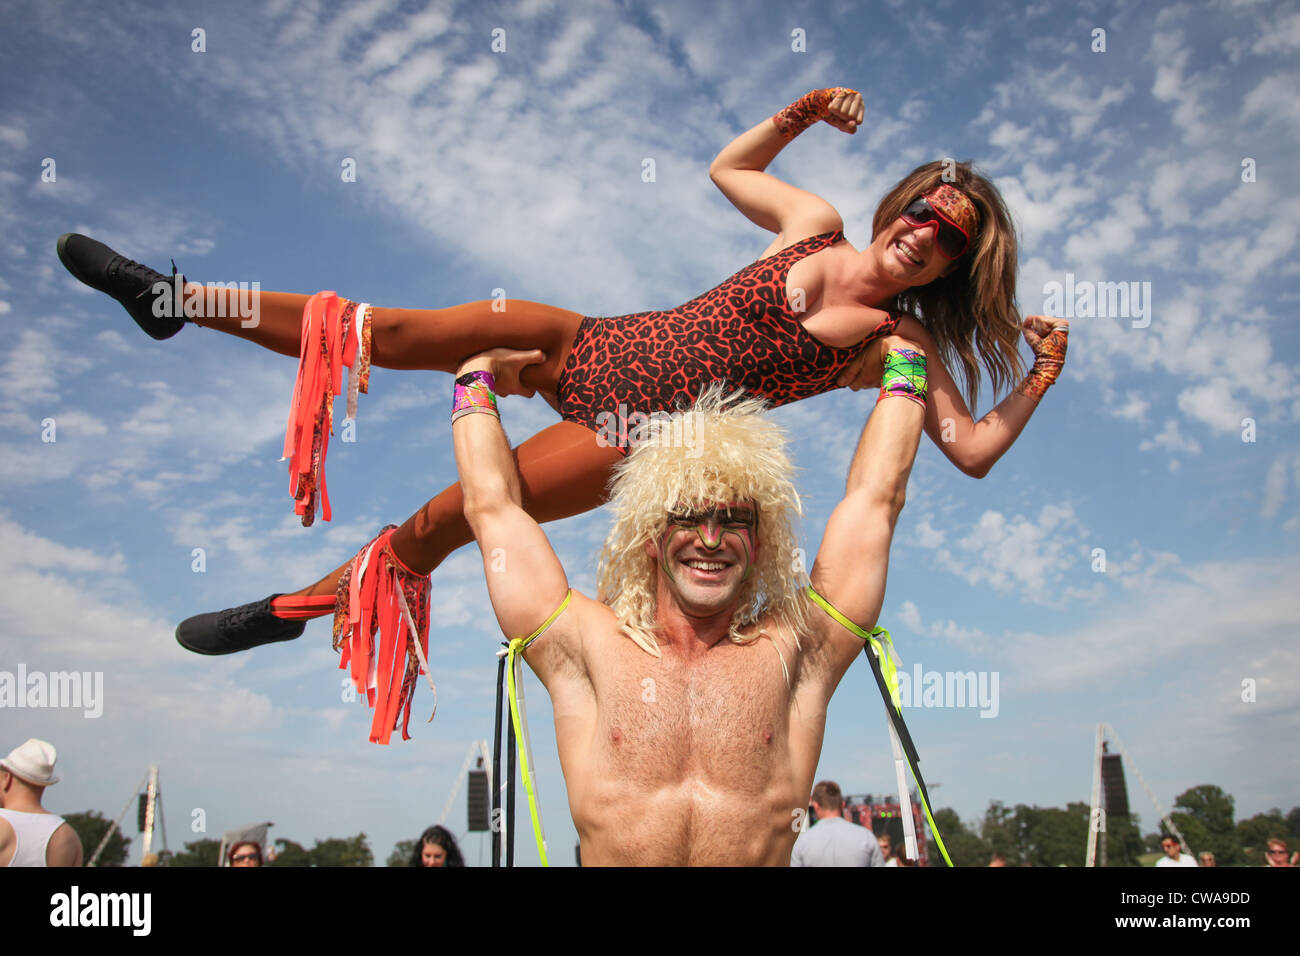 Music fans dressed as wrestlers at V Festival in Hylands Park, Chelmsford, Essex - Stock Image